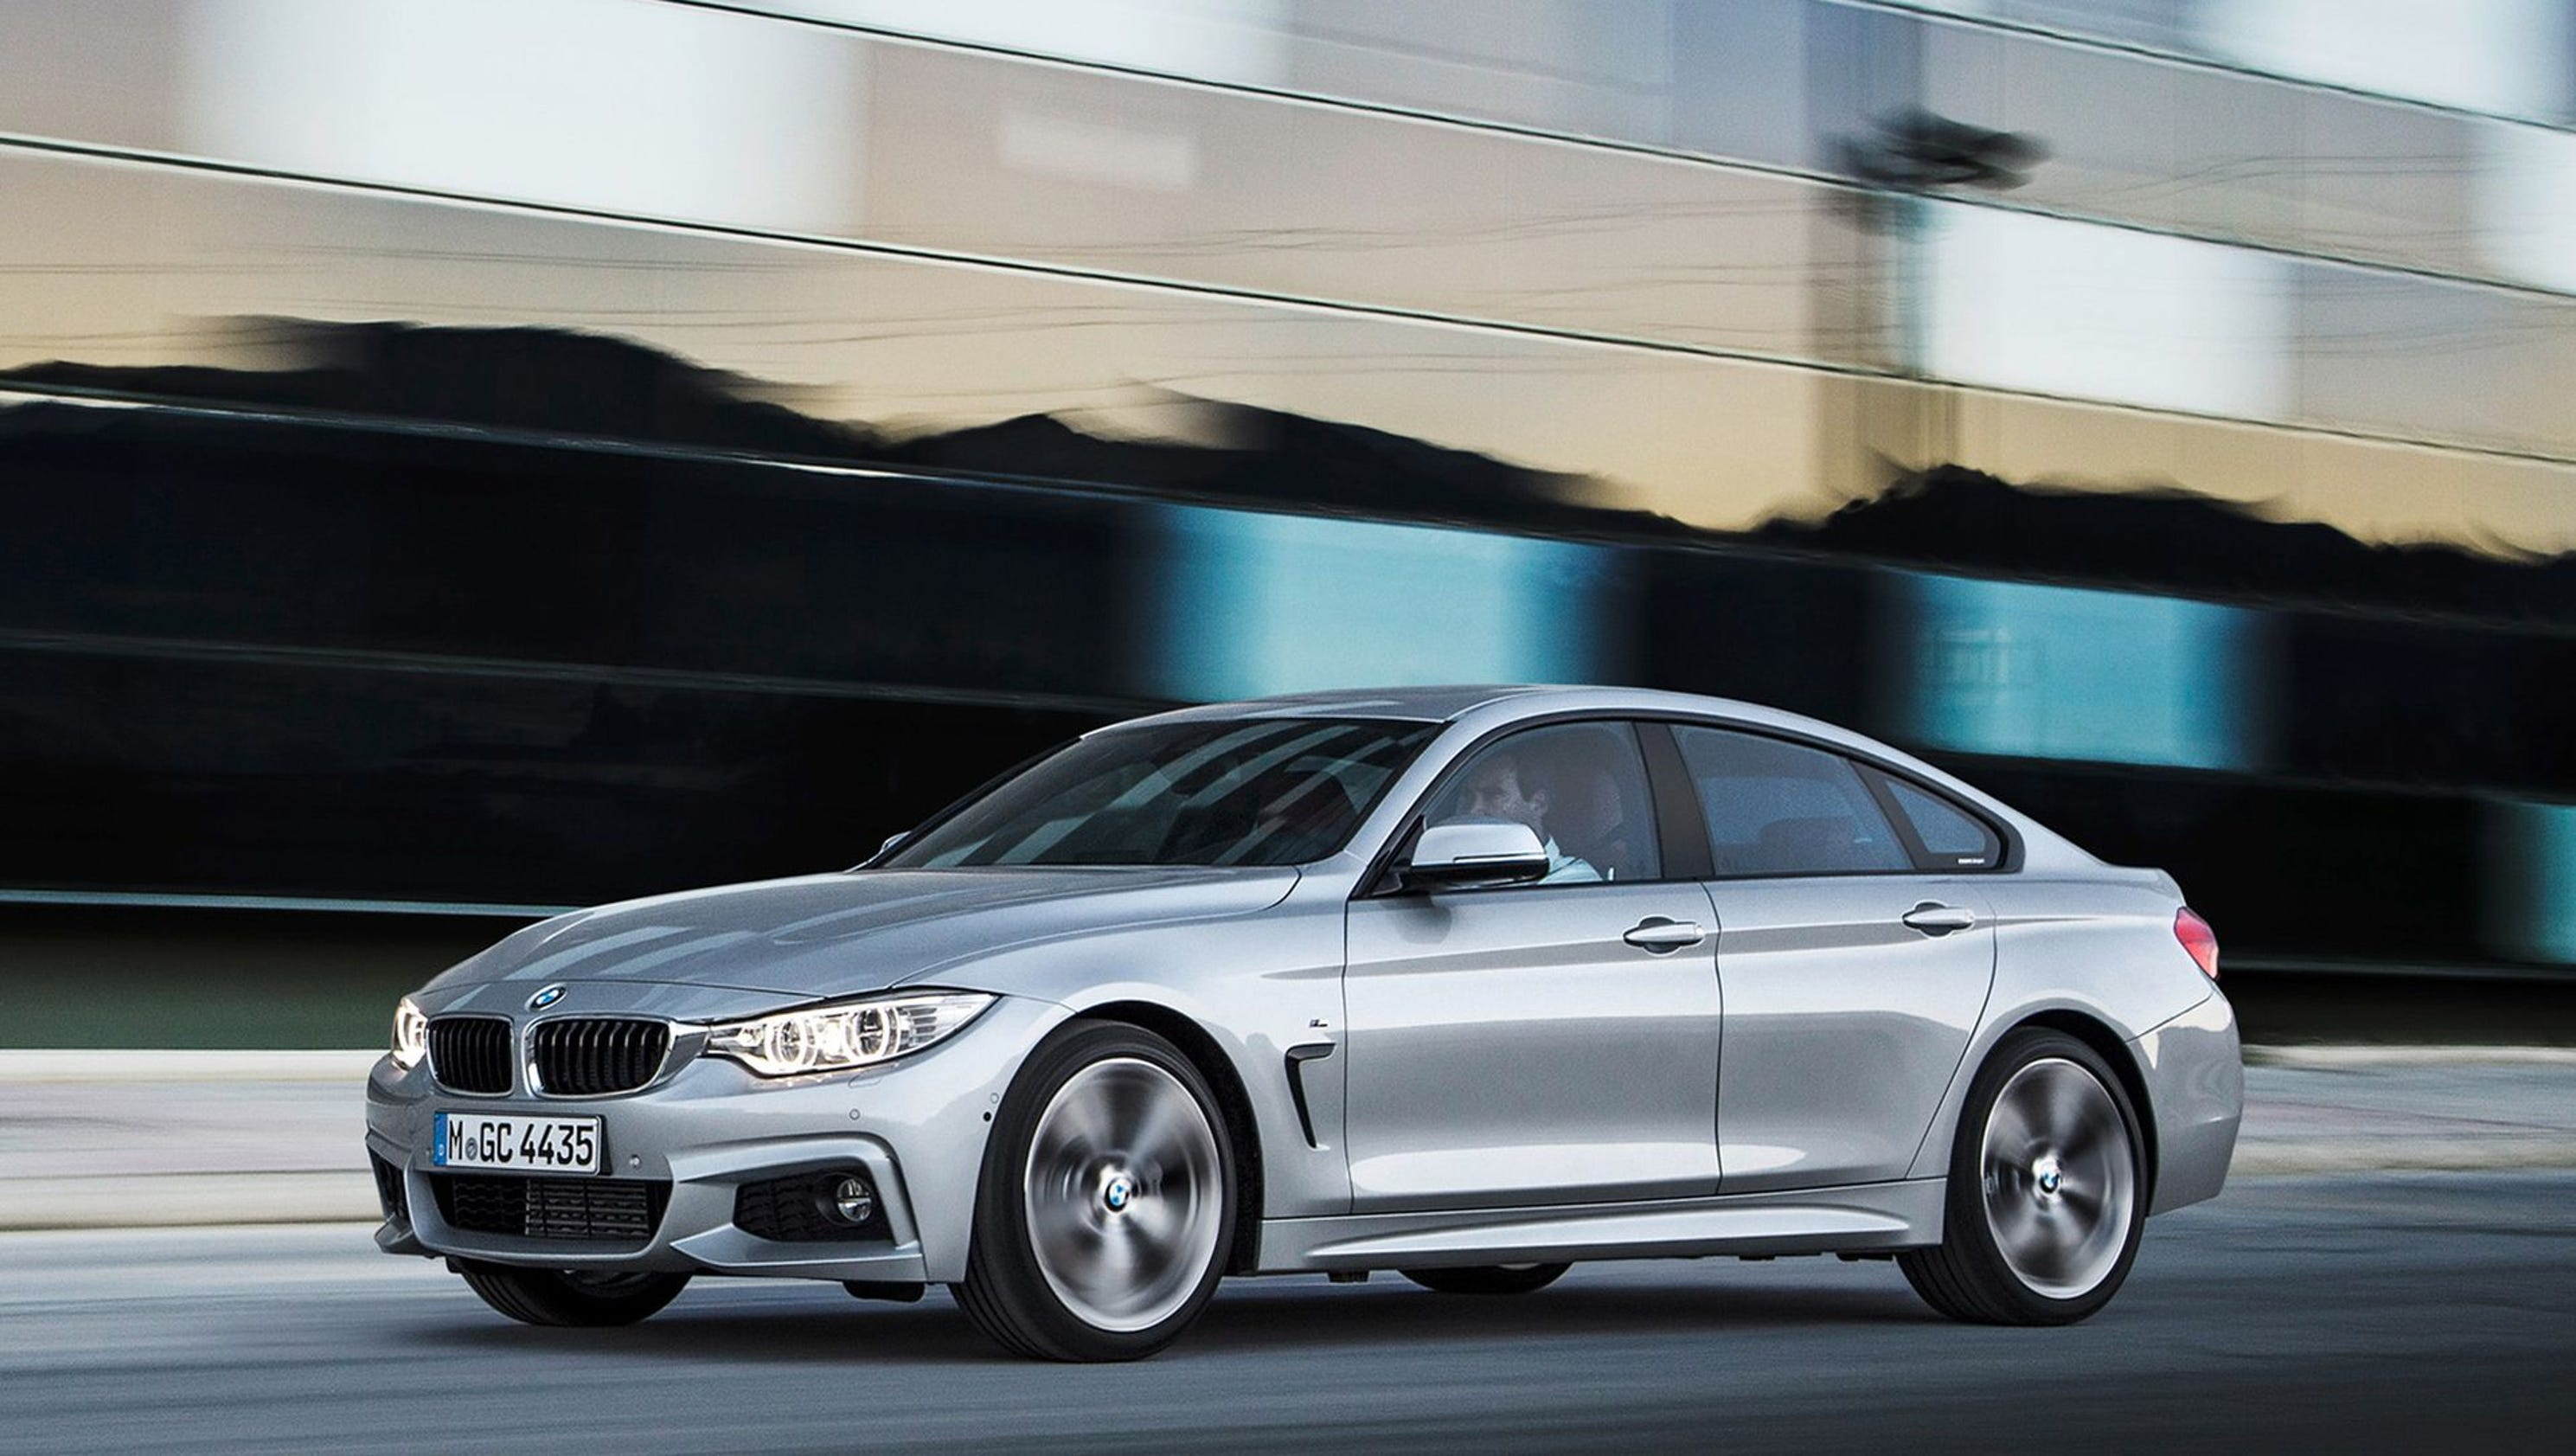 de htm owned luxe qc groupe for in featured vehicles laval gran coupe bmw xdrive sale pre ssentiel